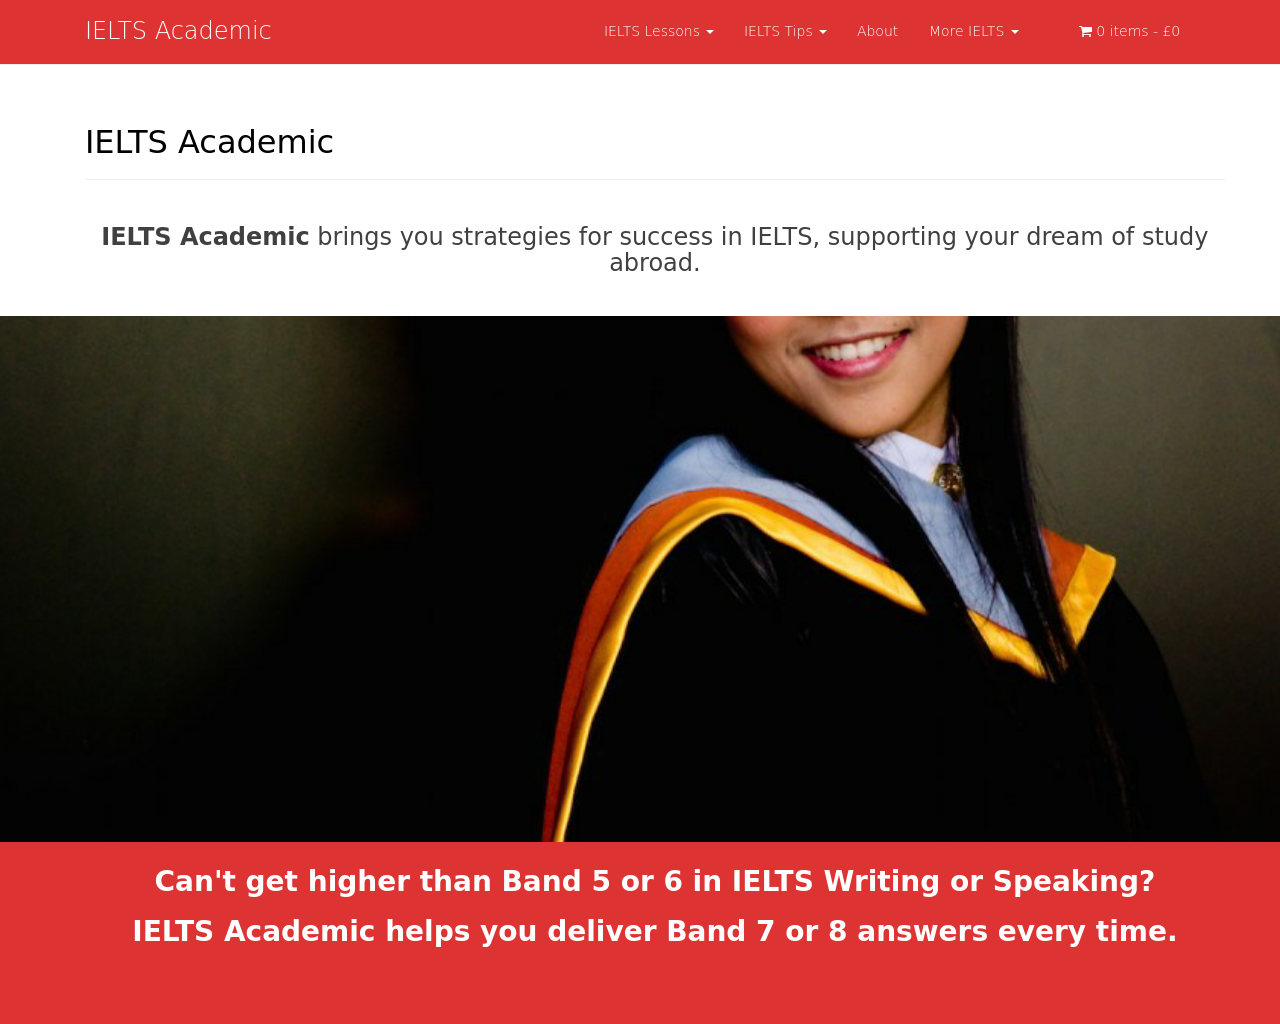 ielts-academic-Advertising-Reviews-Pricing